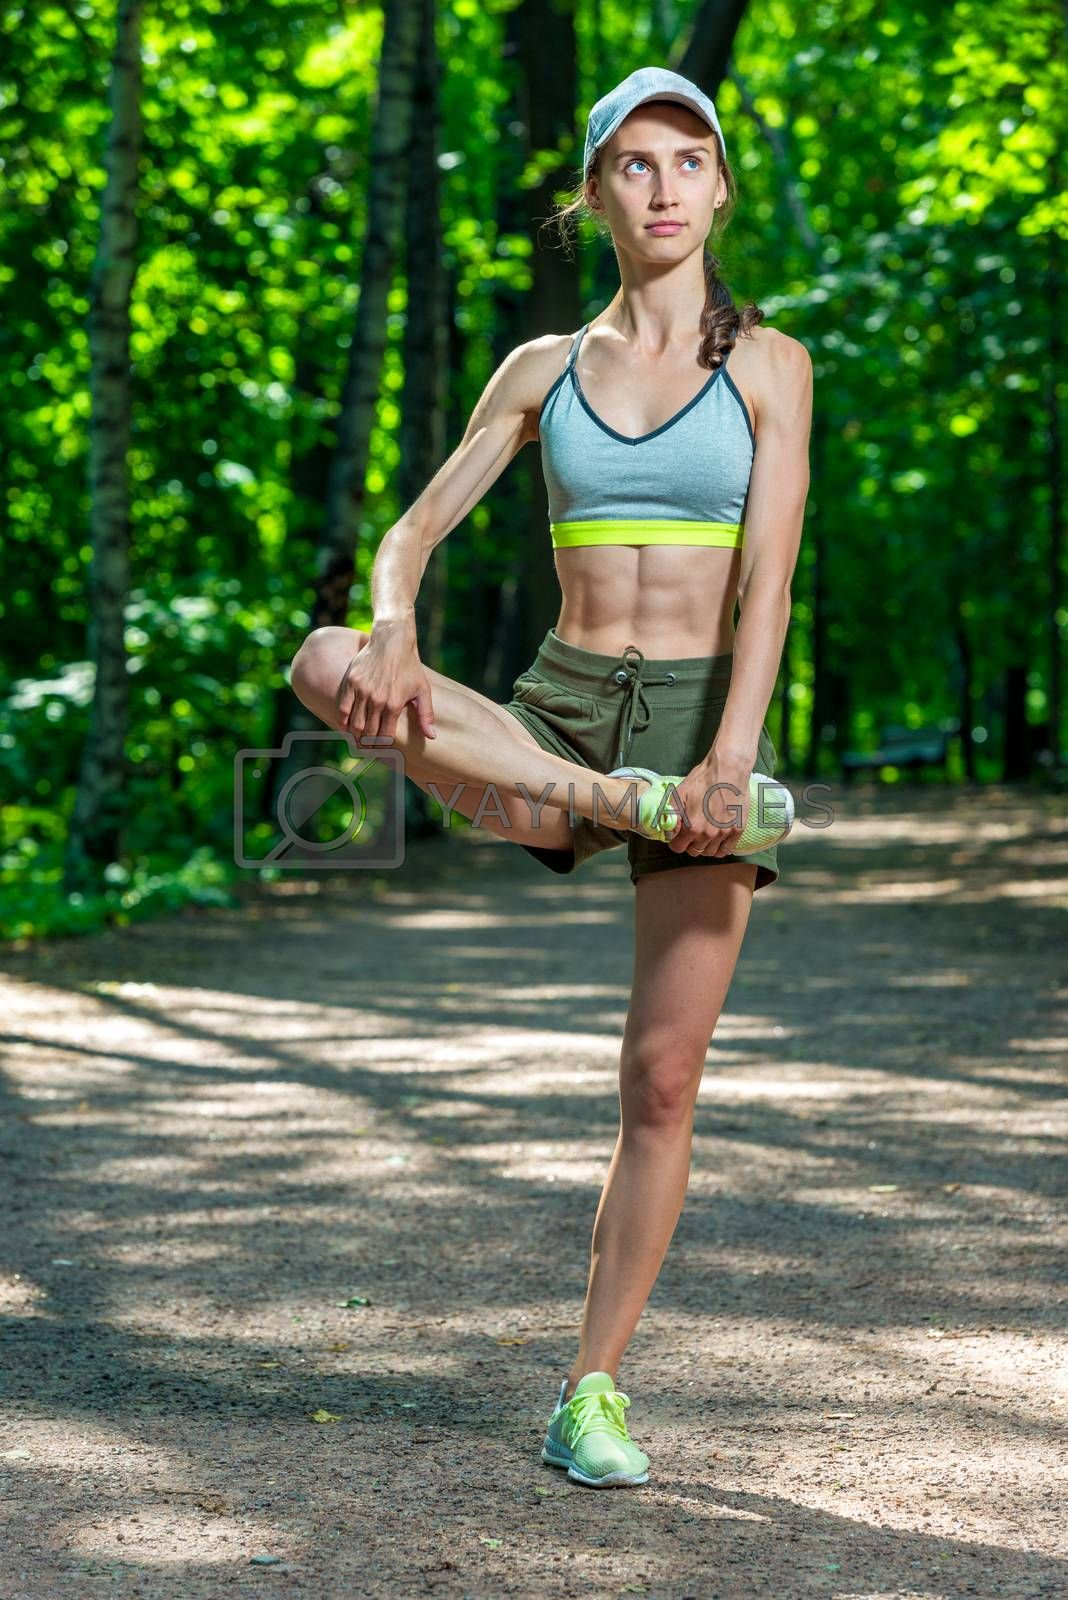 beautiful muscular athletic girl warms up her muscles before jog by Labunskiy K.